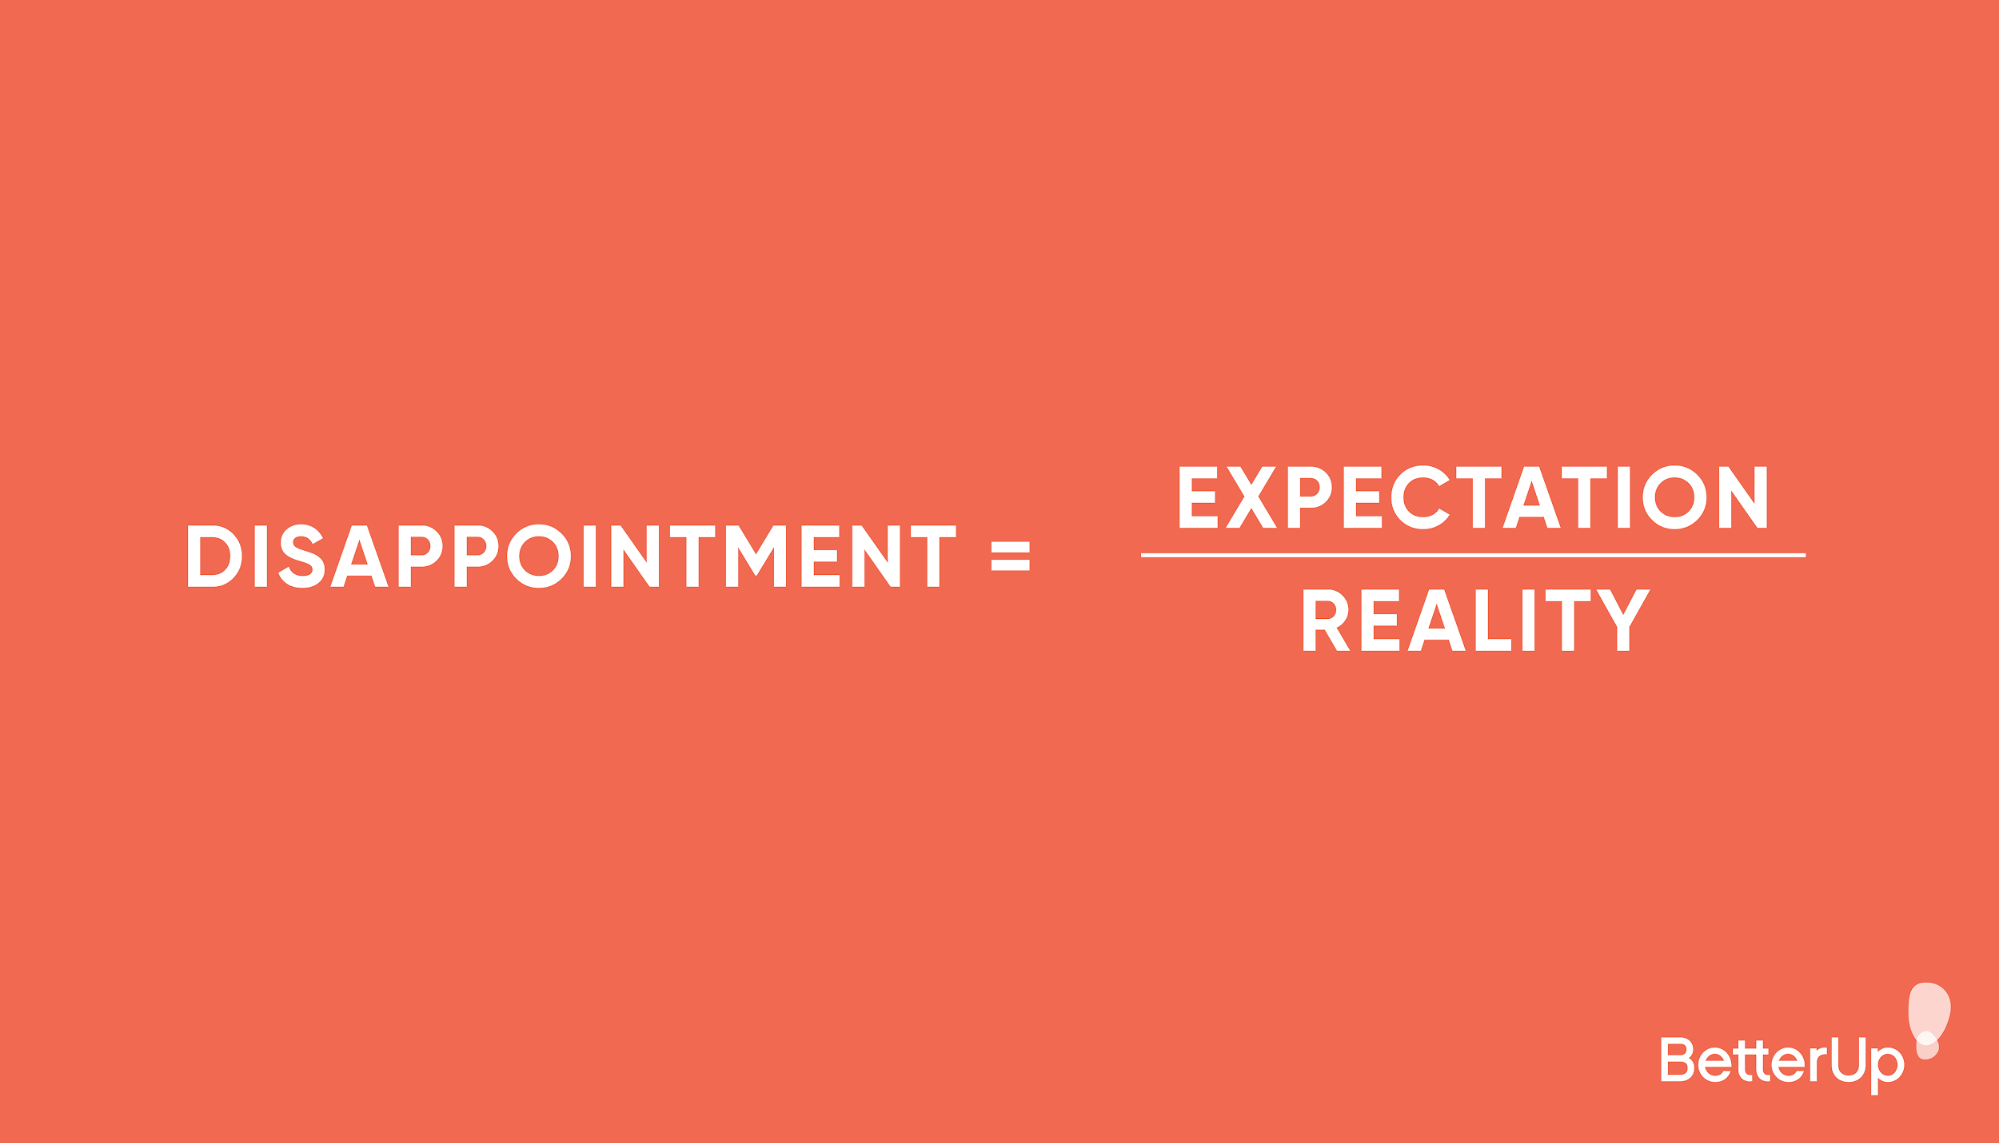 disappointment equations - how to deal with disappointment